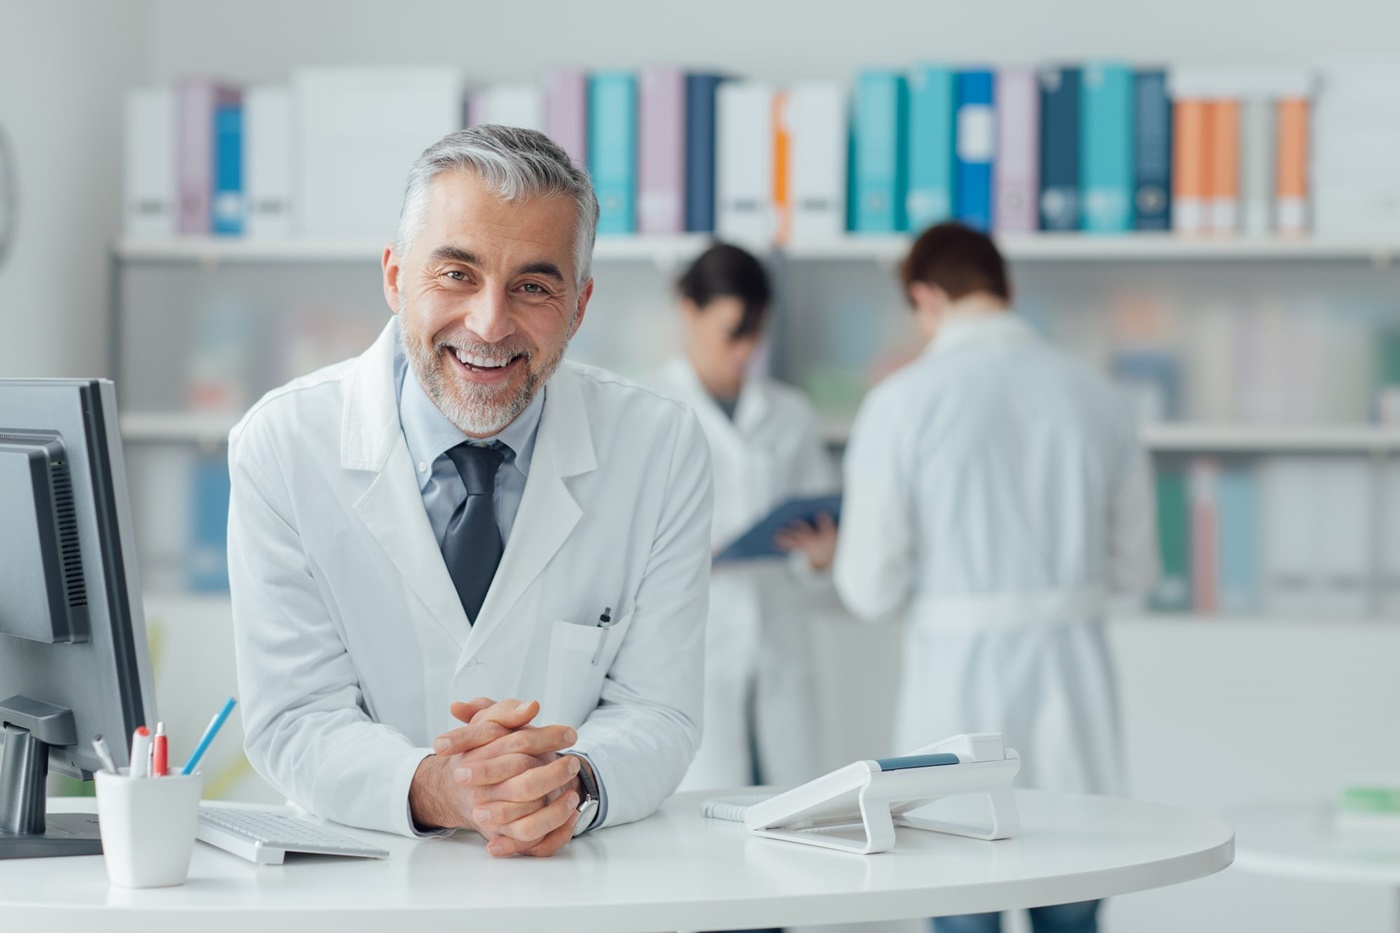 Physician in white lab coat behind front desk ready to consult patients